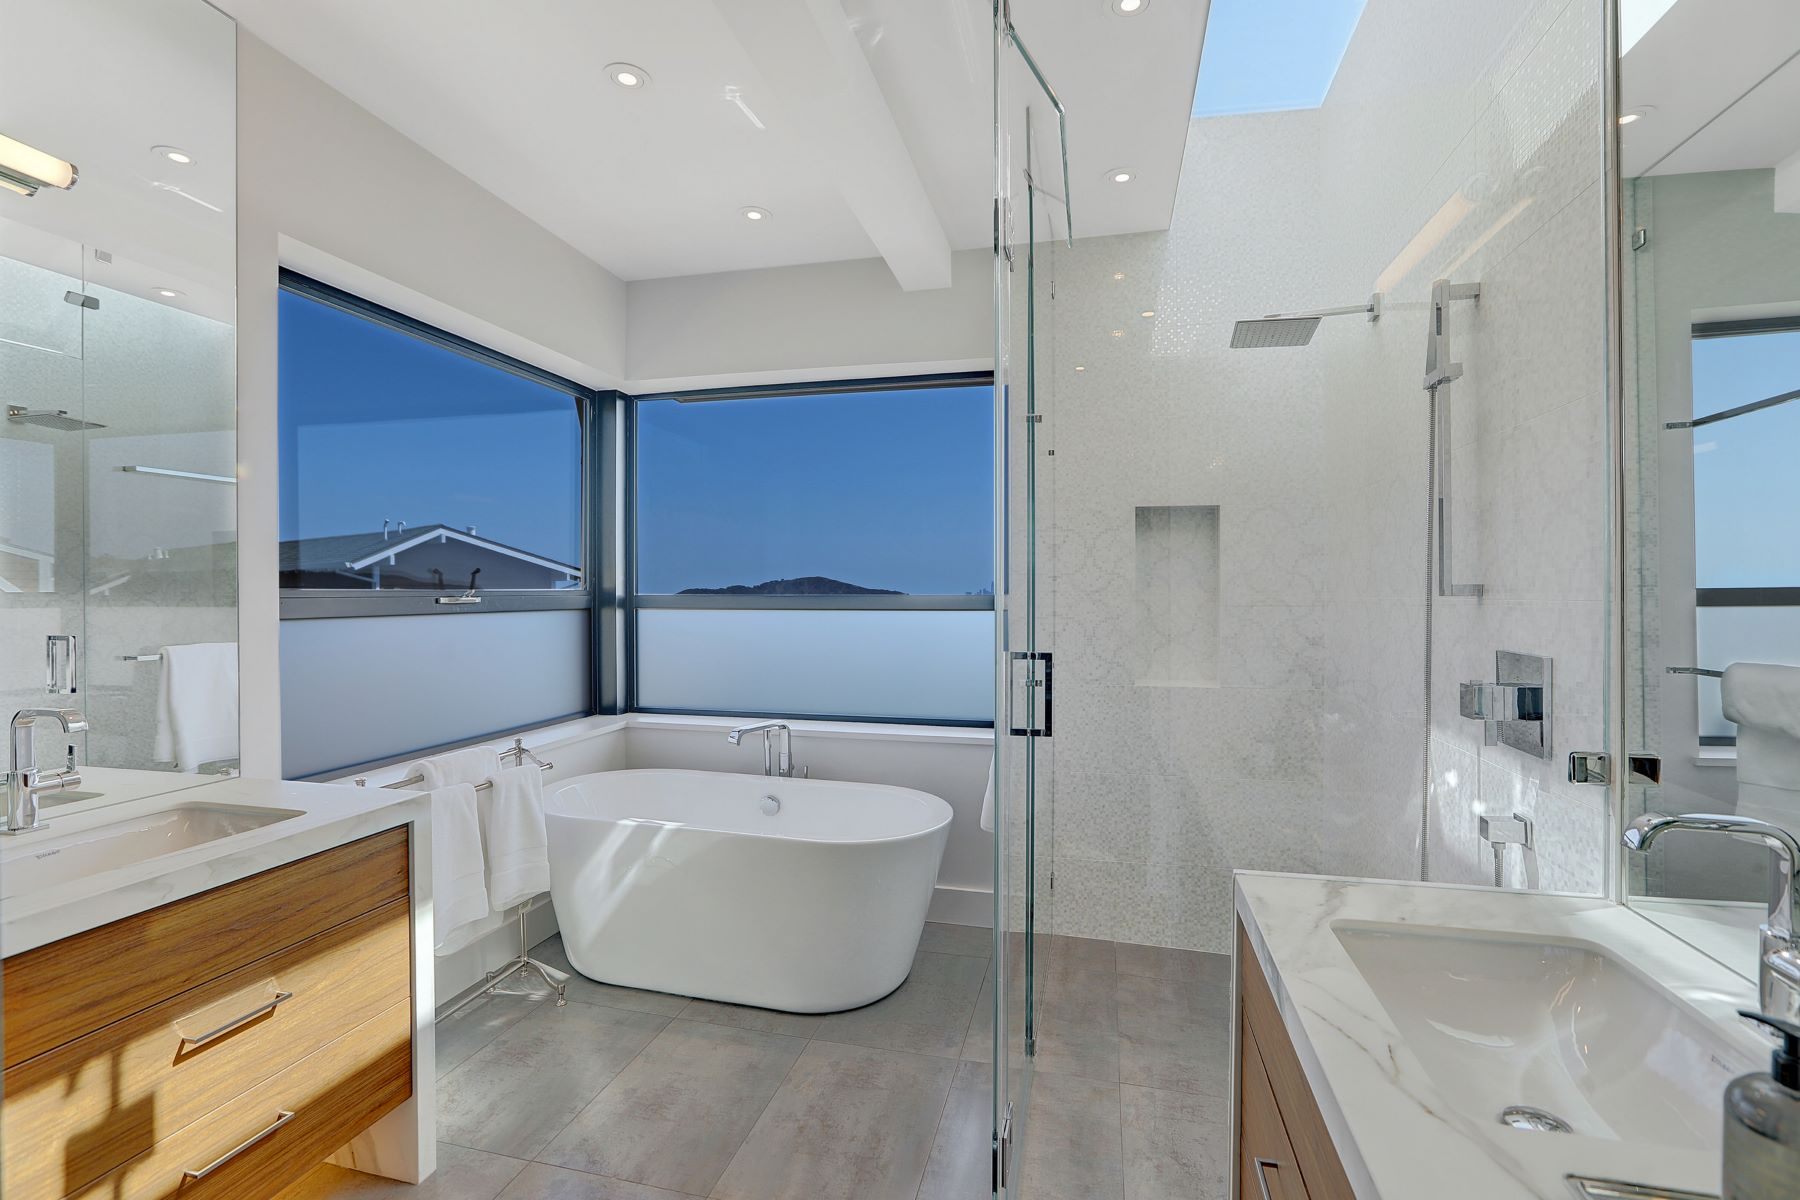 Additional photo for property listing at Spectacular Ultra Contemporary Home! 86 Sugarloaf Dr Tiburon, California 94920 United States